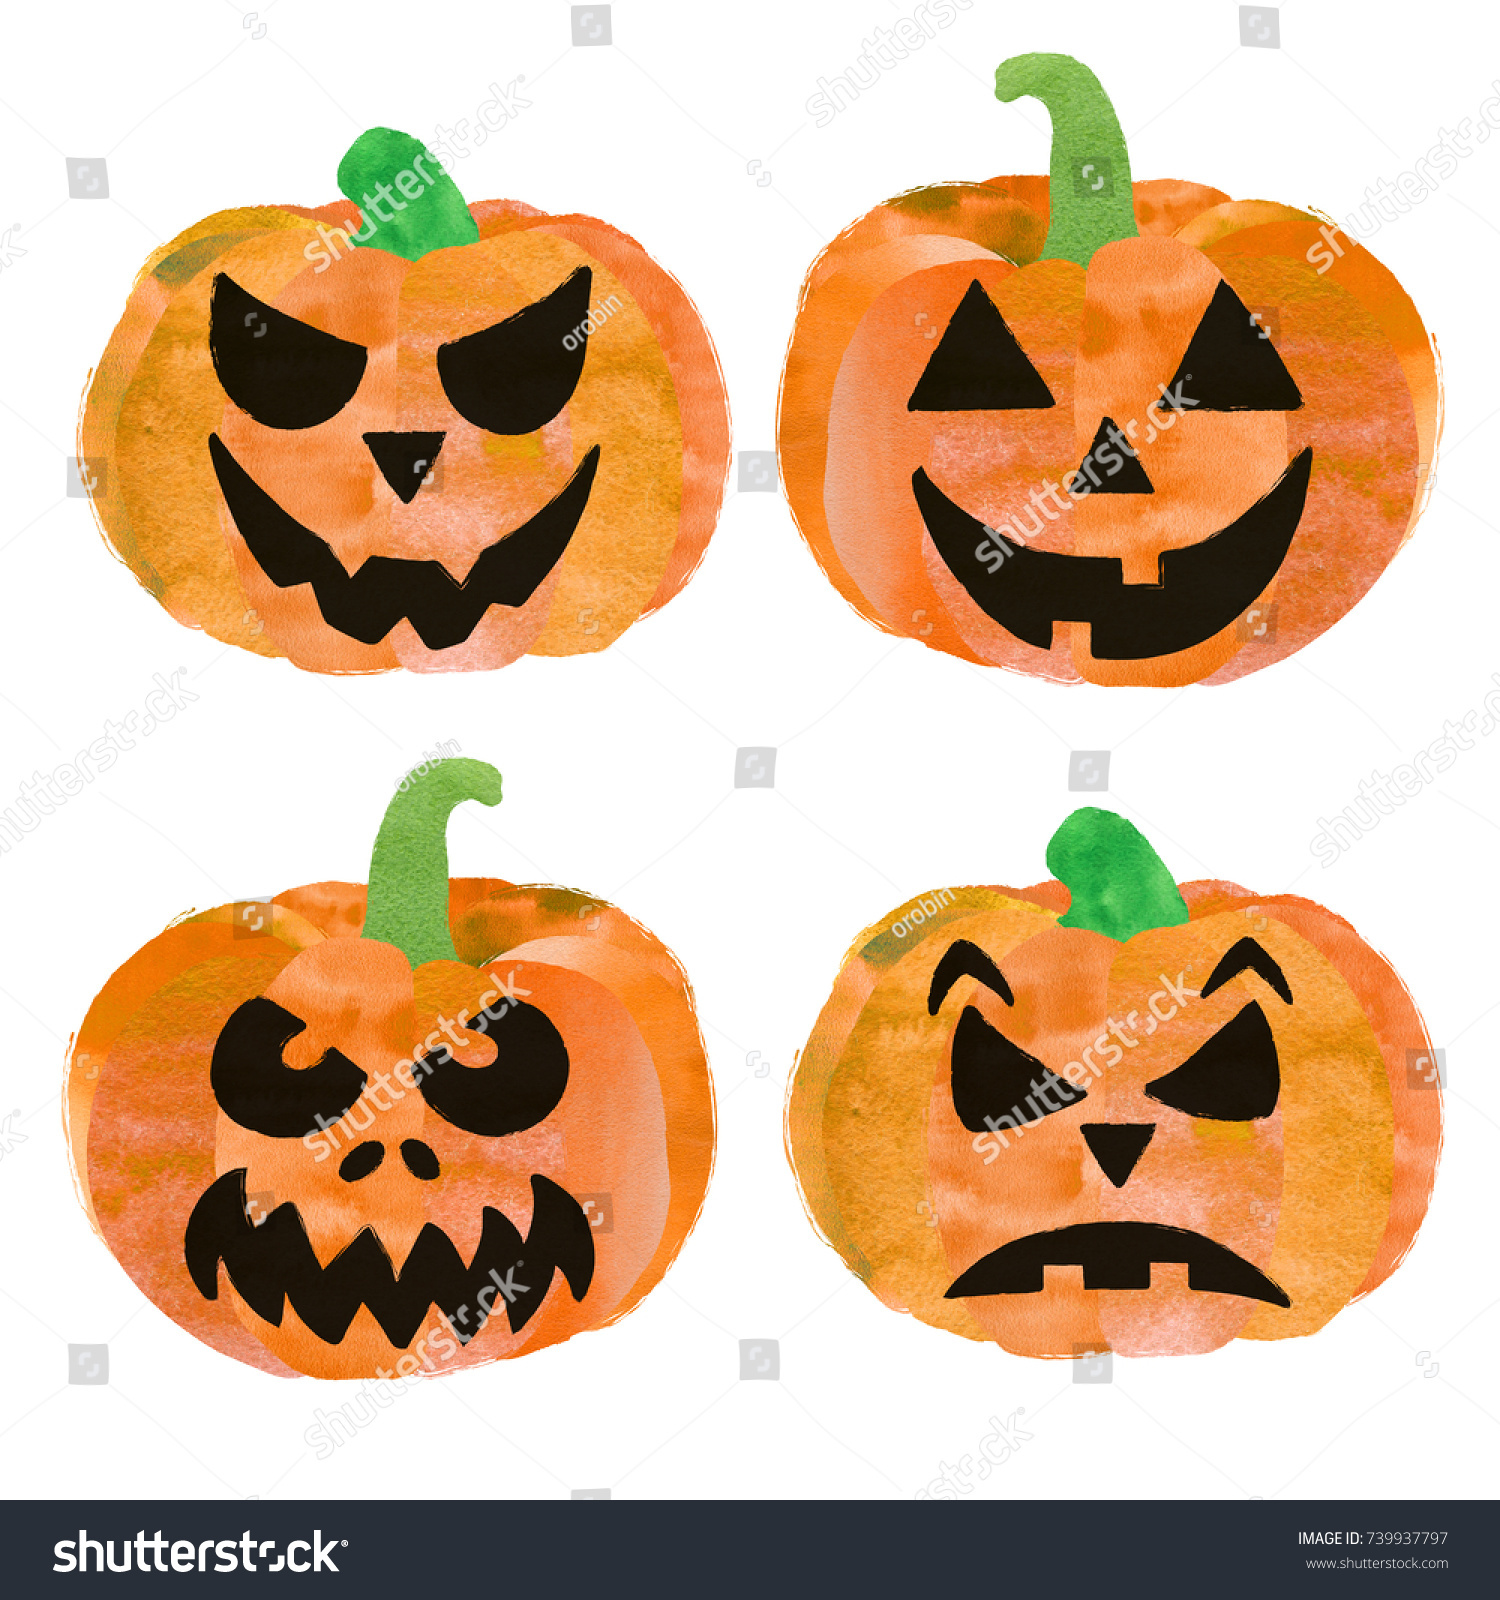 Set 4 Halloween Pumpkins Cute Scary Stock Illustration 739937797 ...